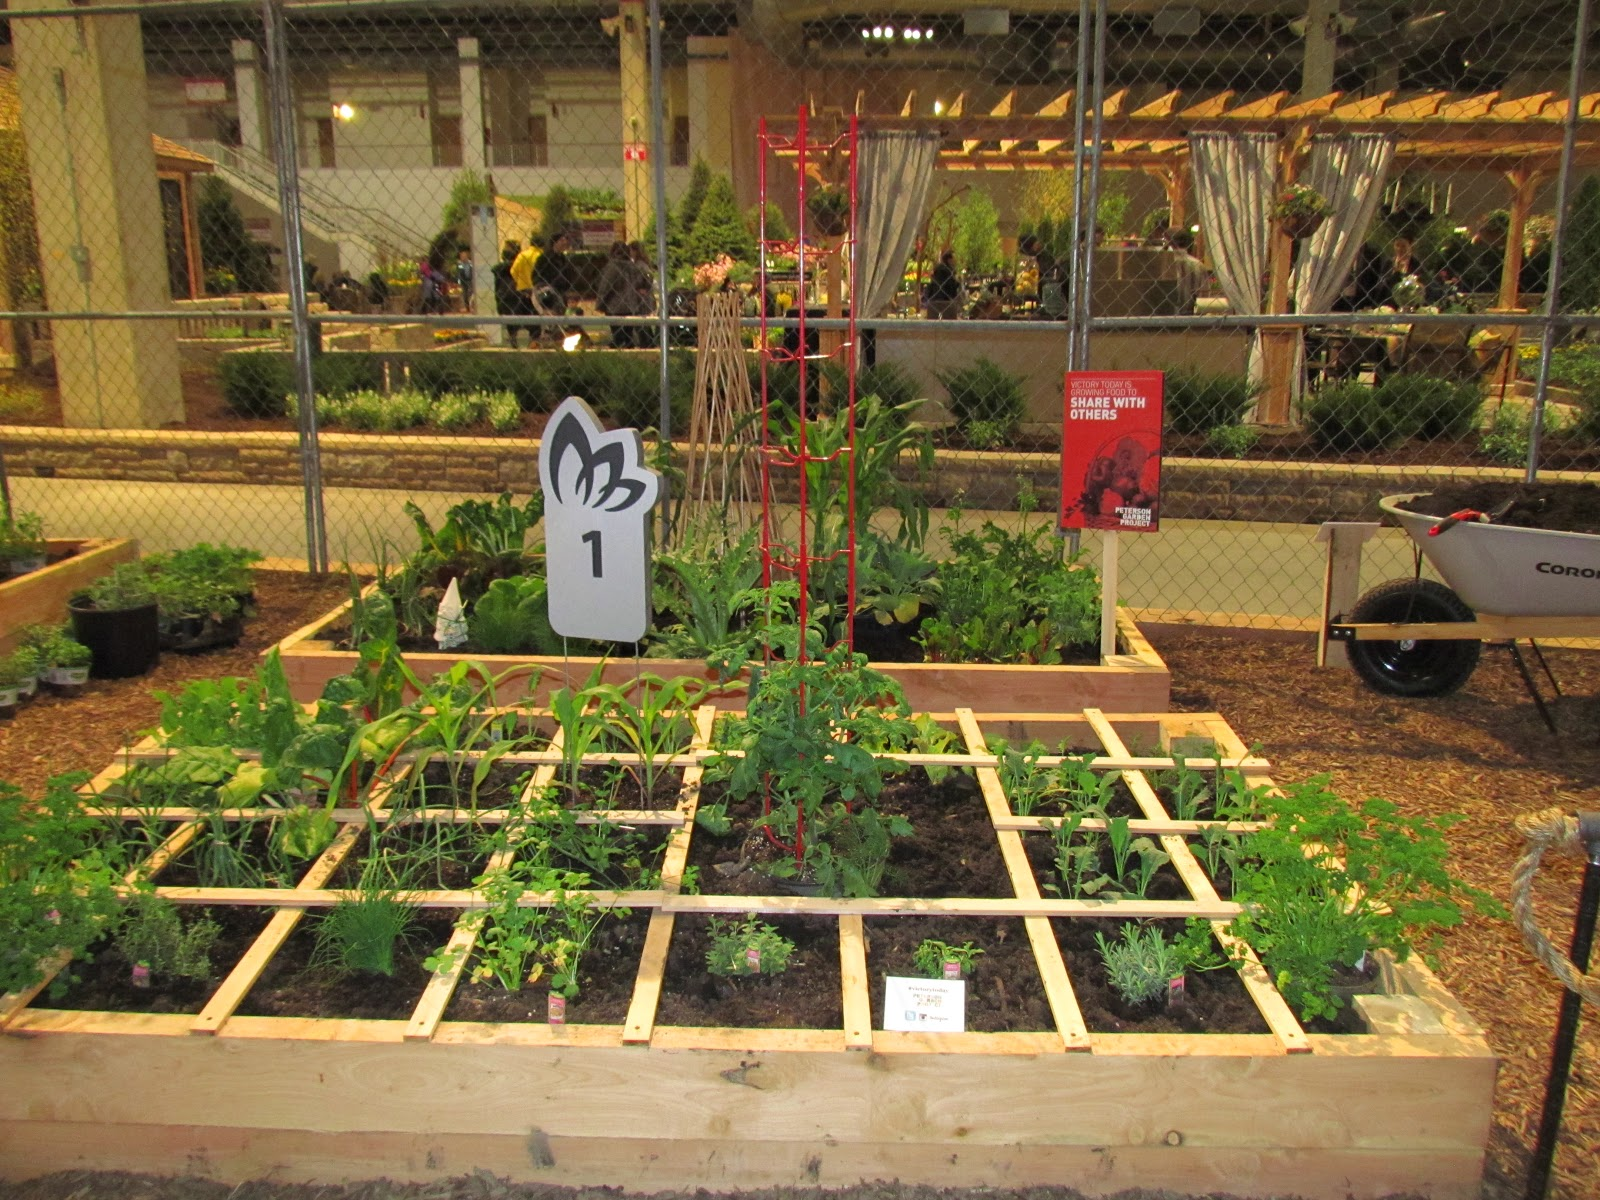 bwisegardening: Chicago Flower and Garden Show